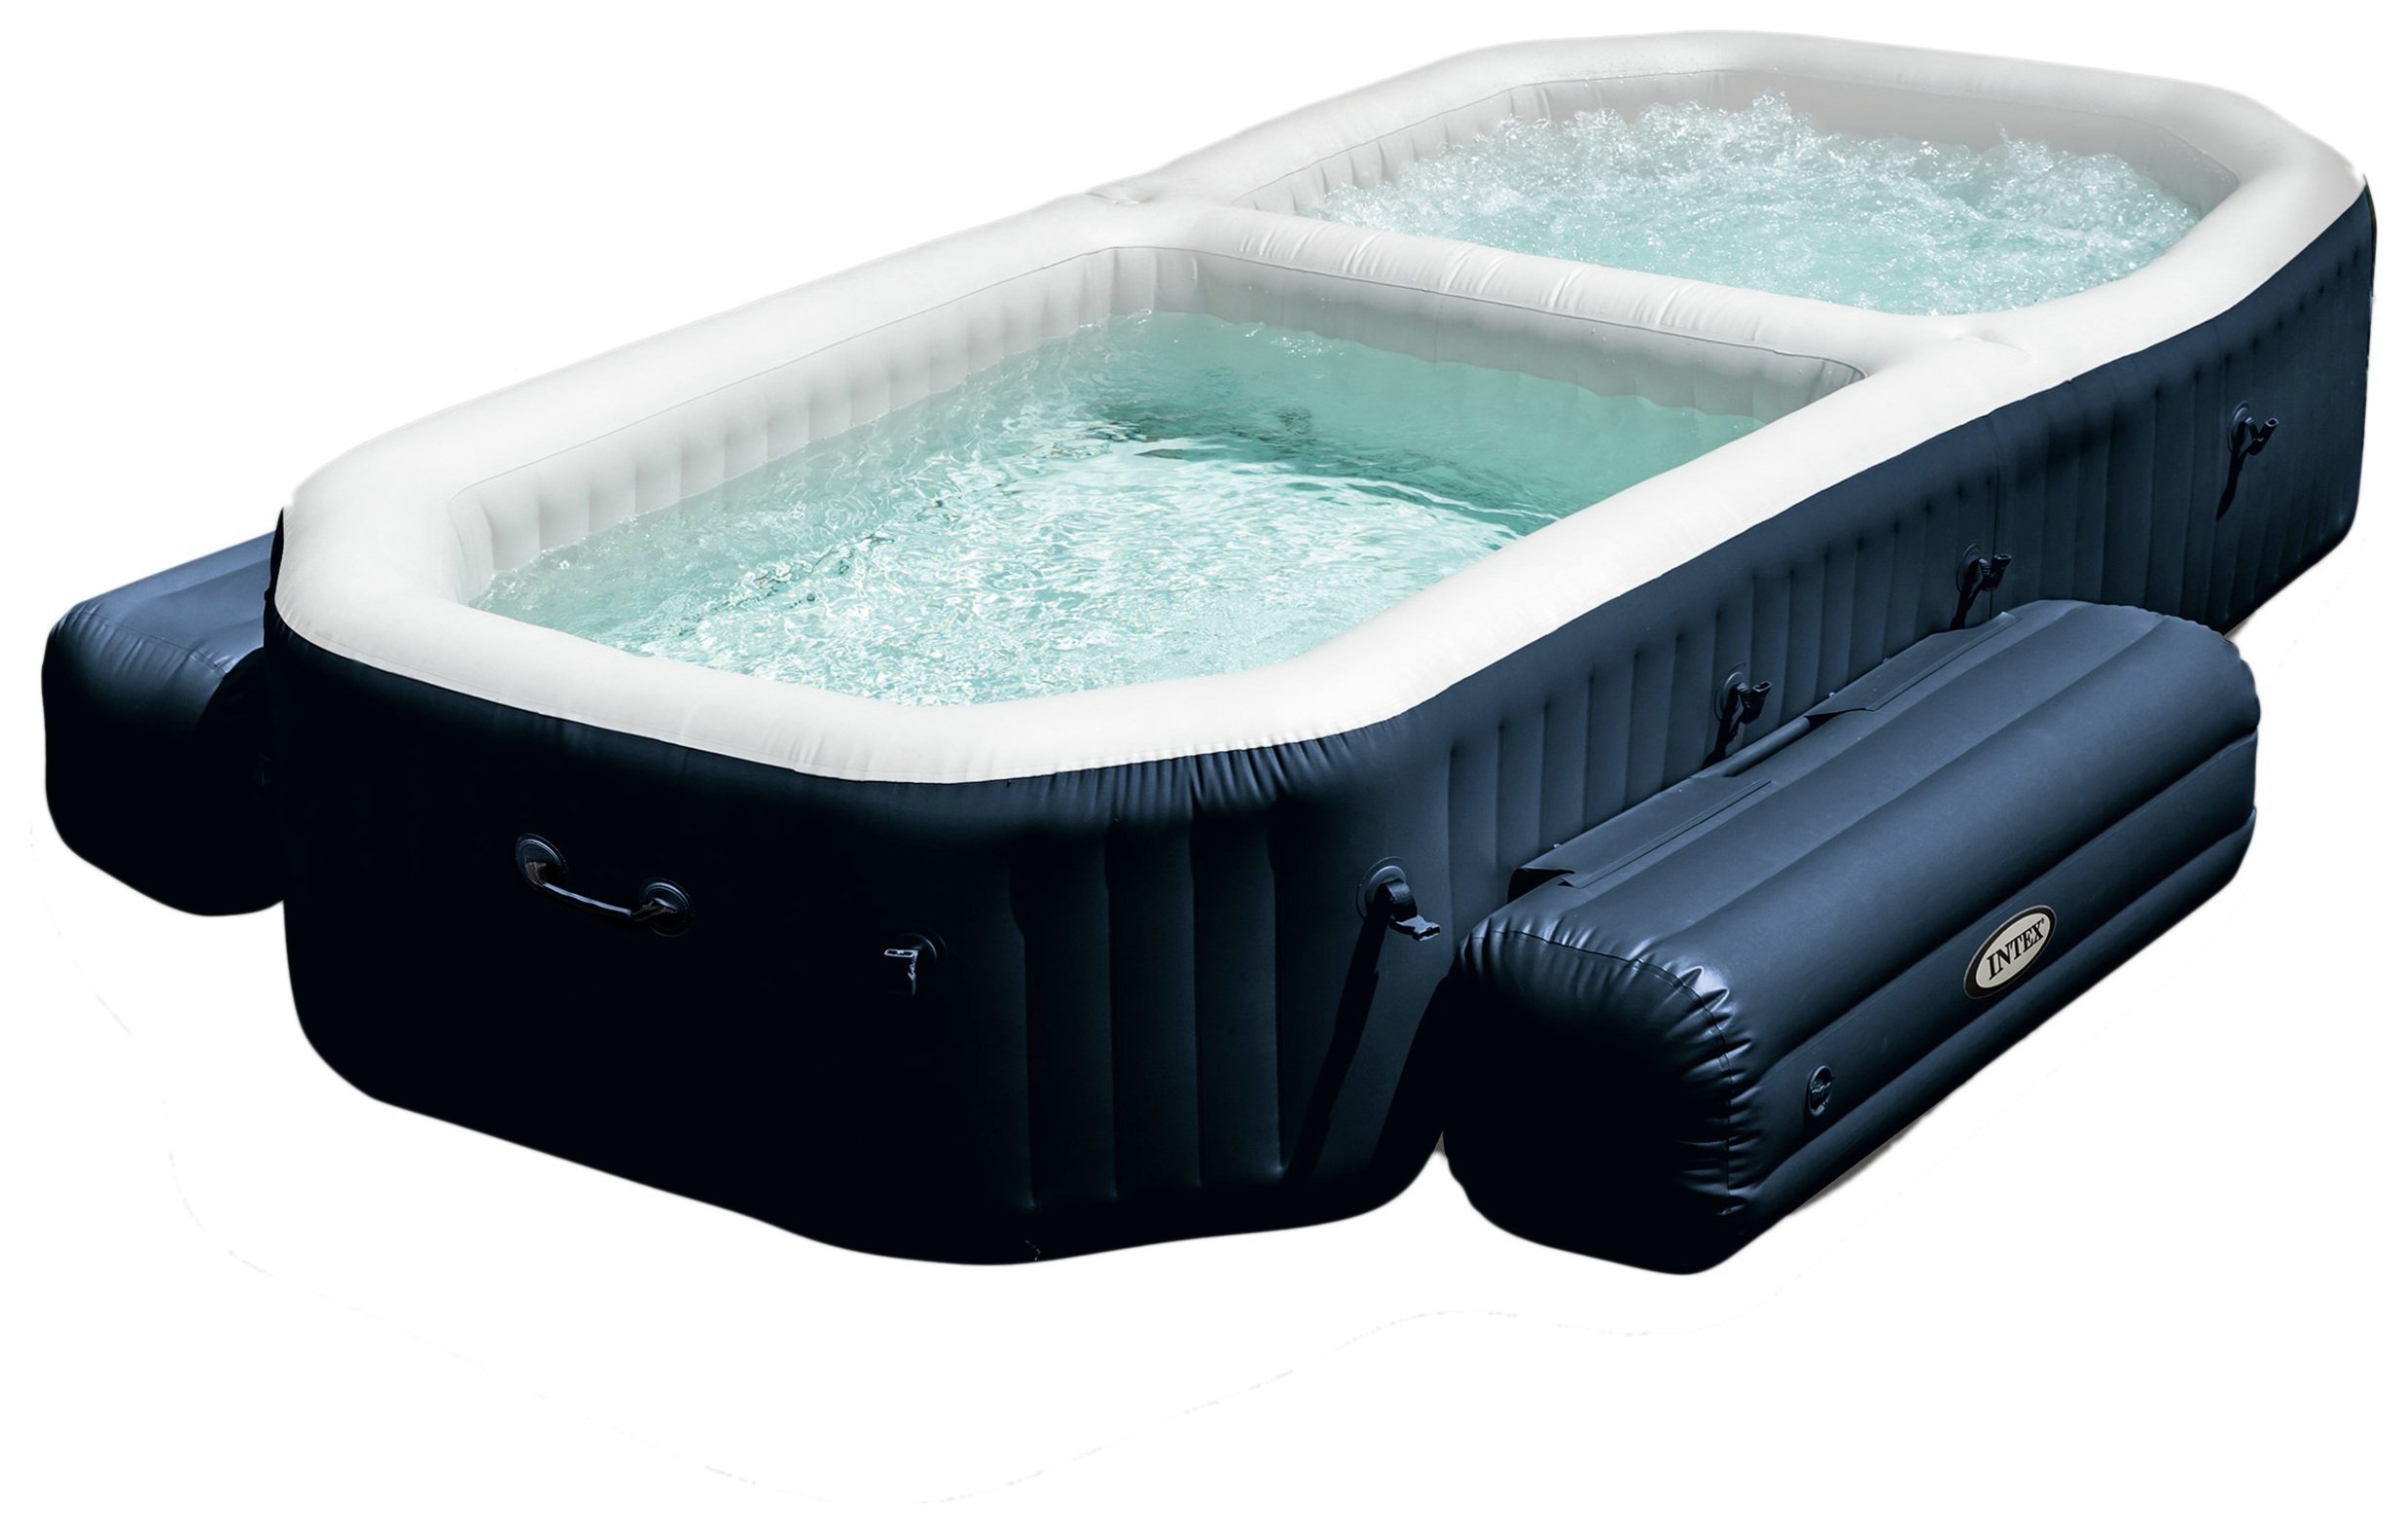 Sale on intex pure spa with plunge pool intex now available our best price on intex pure spa wit - Pure spa intex ...